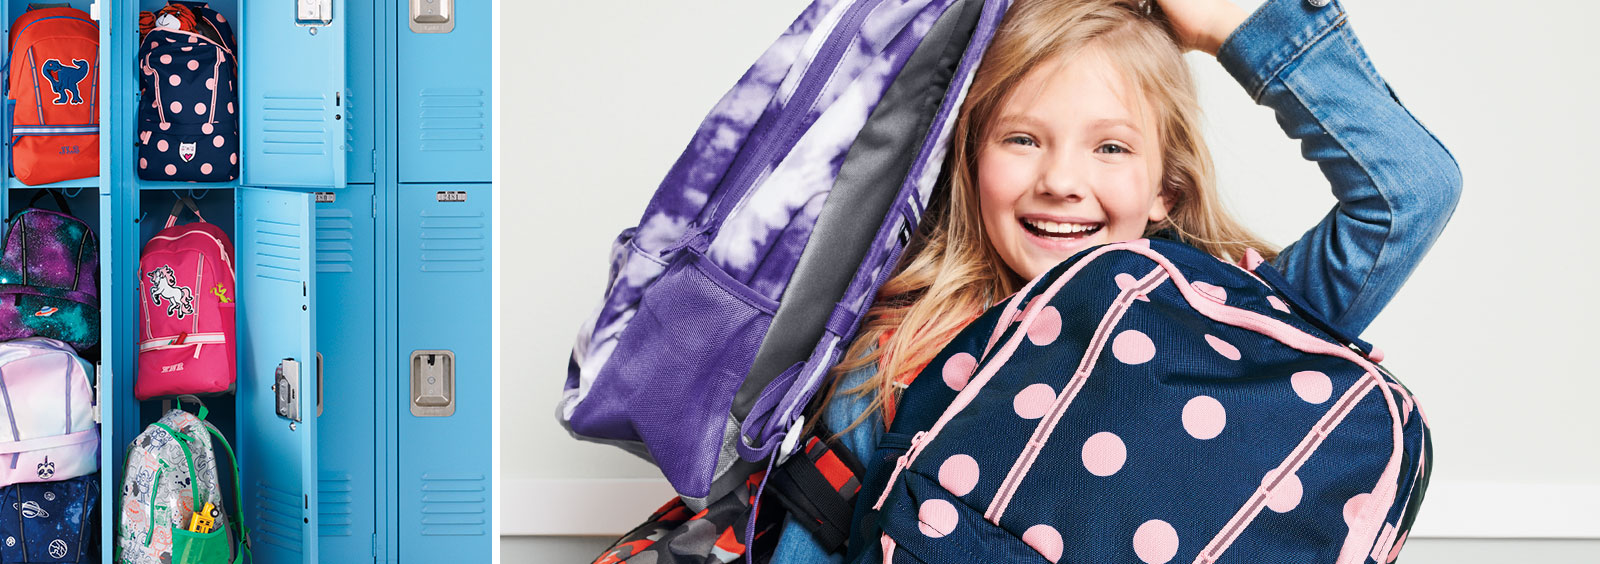 How Can I Make This Her Favorite Backpack Ever?